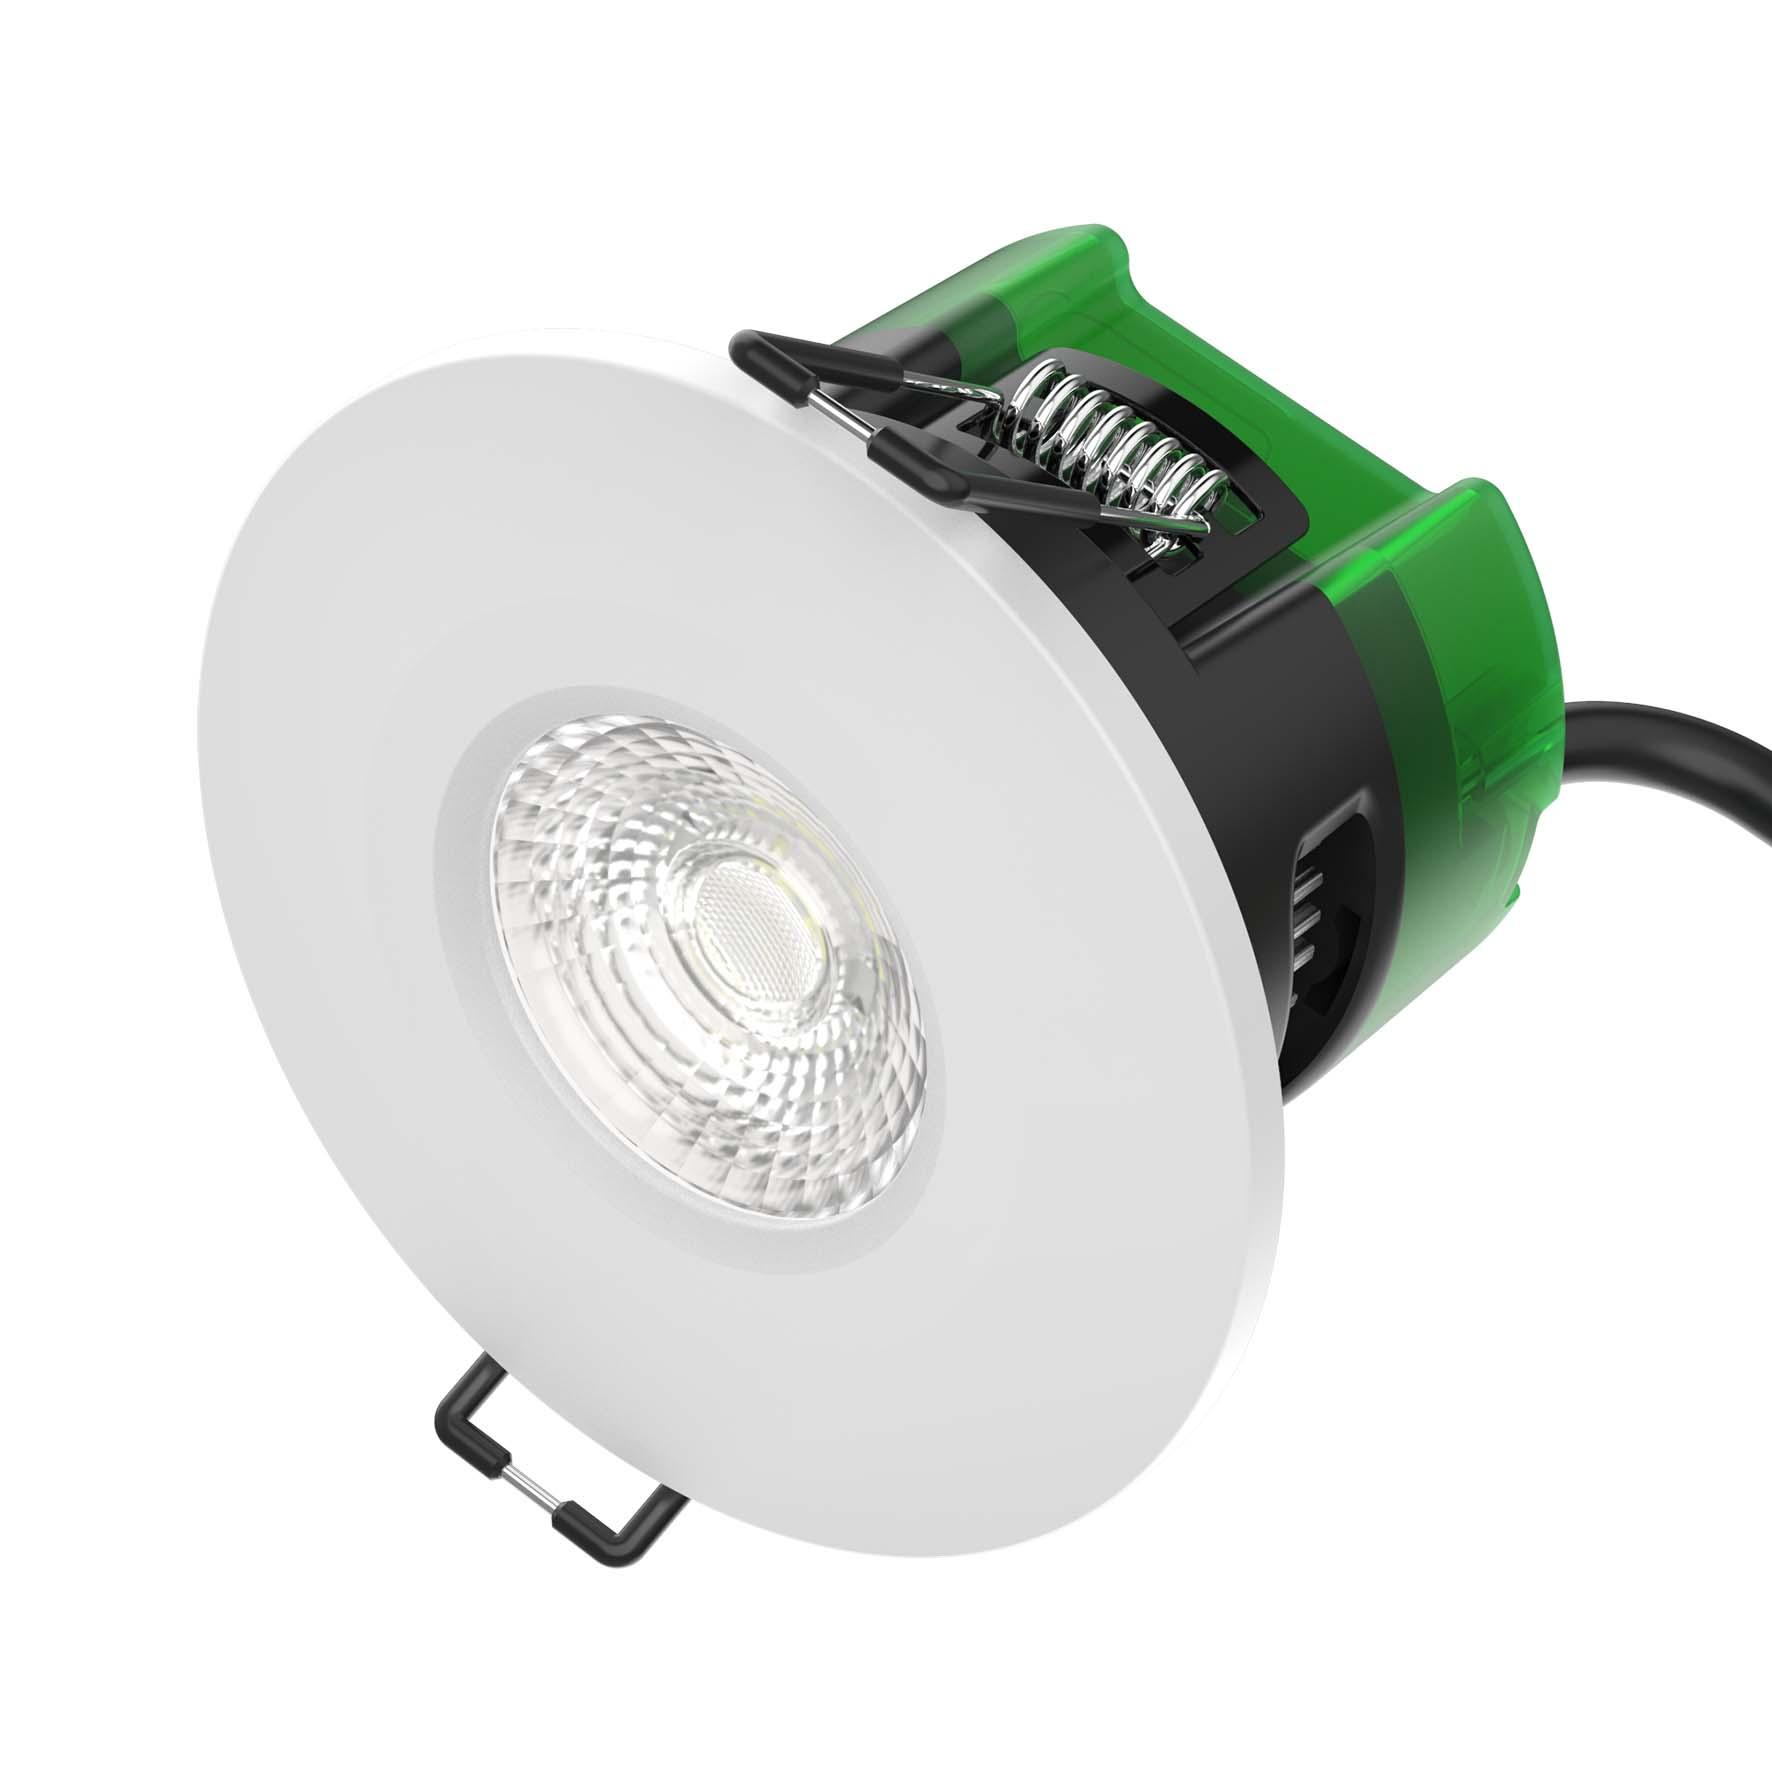 BL LED DL FIRESTAY FXD 6W IP65 860 D 35K DOWNLIGHT DIMMABLE FIXED